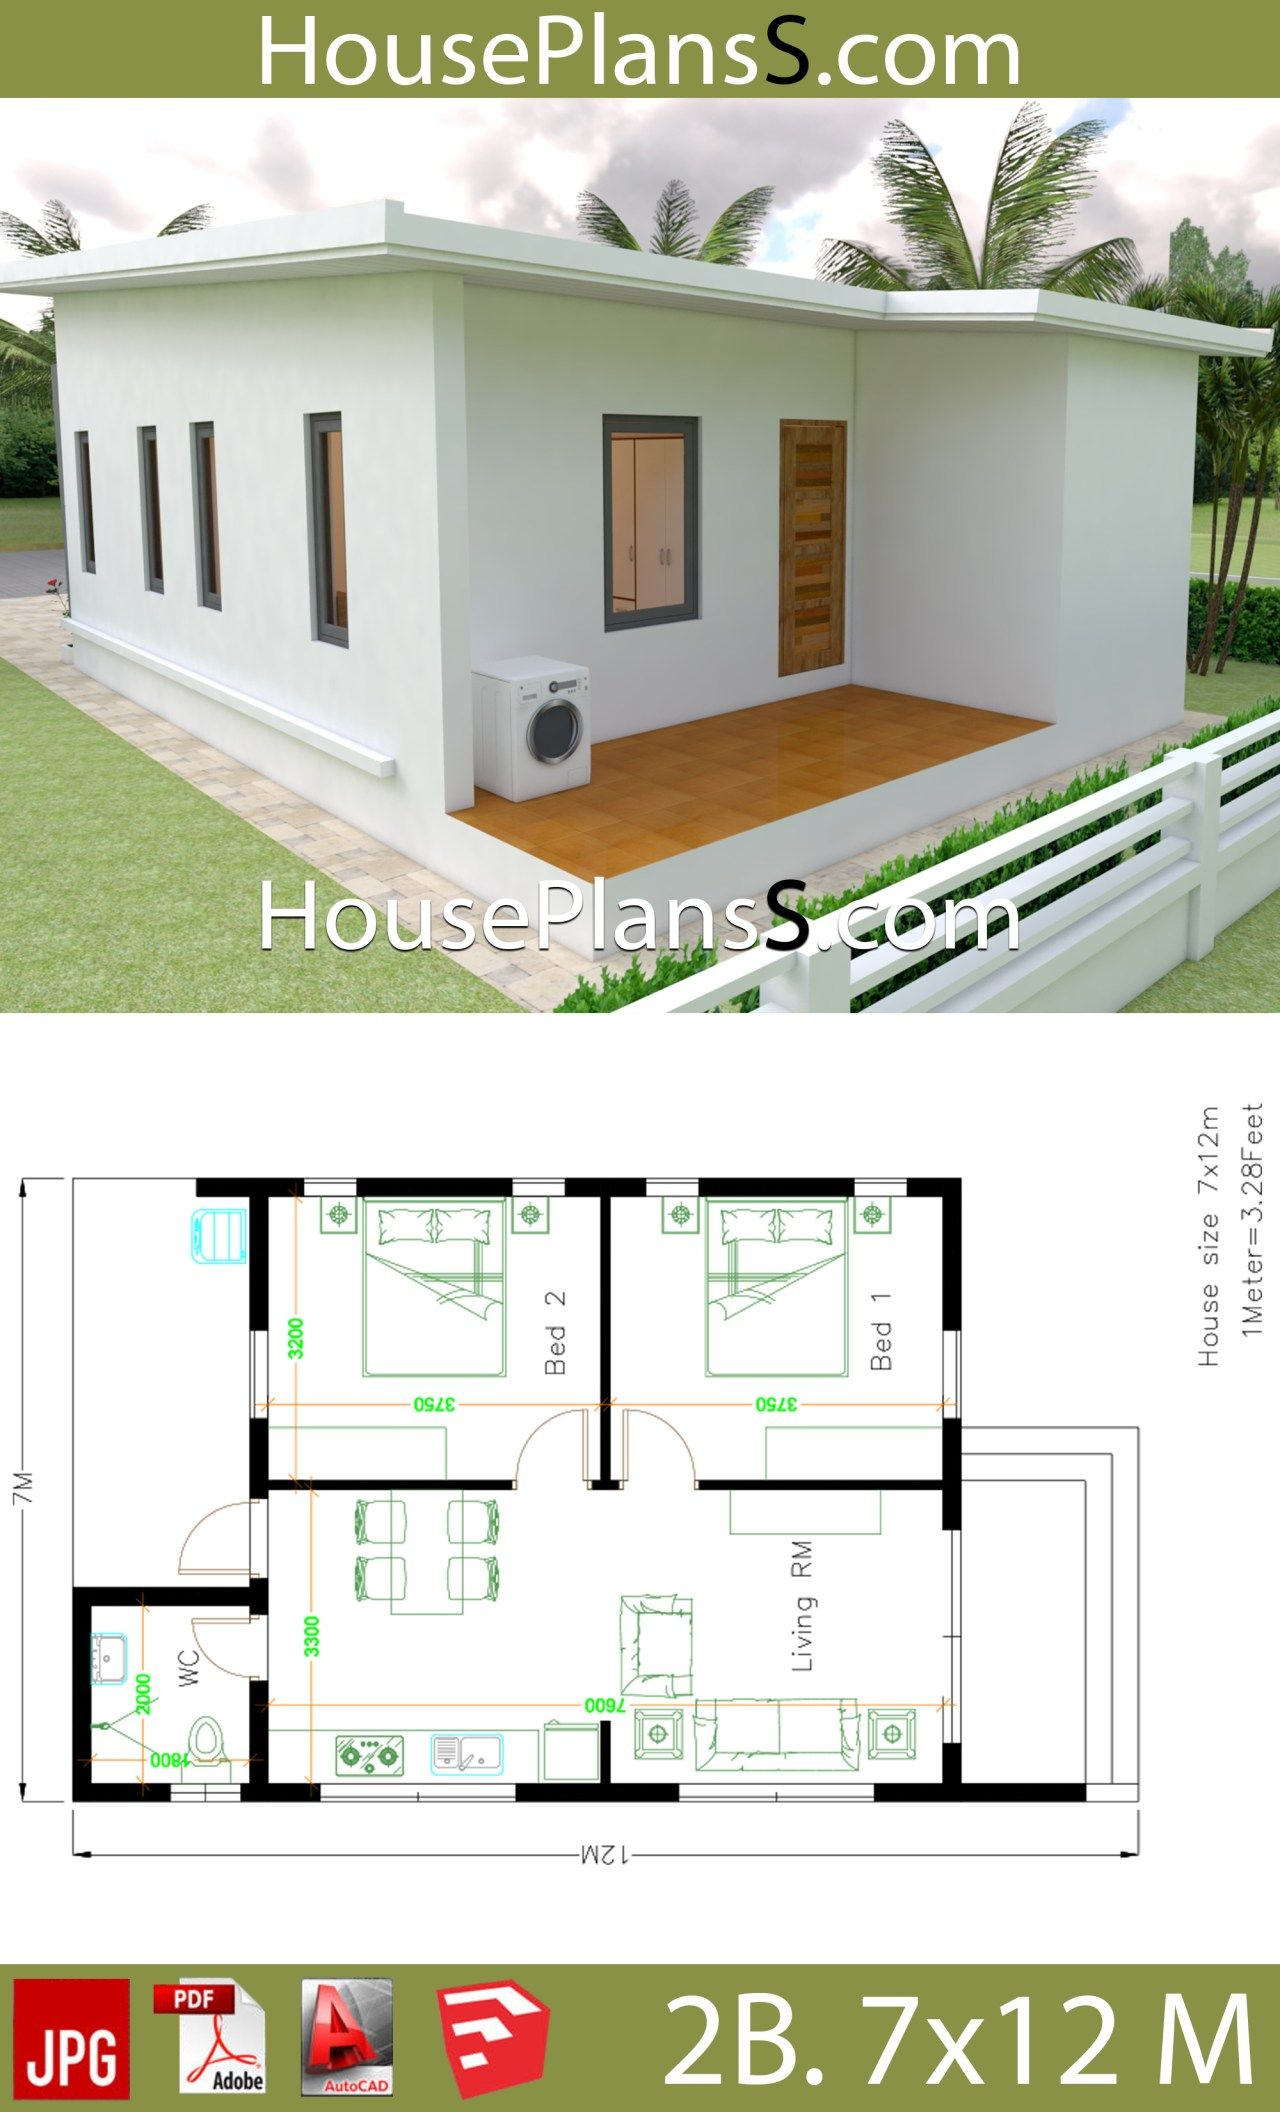 Small House Design Plans 7x12 With 2 Bedrooms Full Plans House Plans 3d Small House Design Plans Village House Design Small House Design